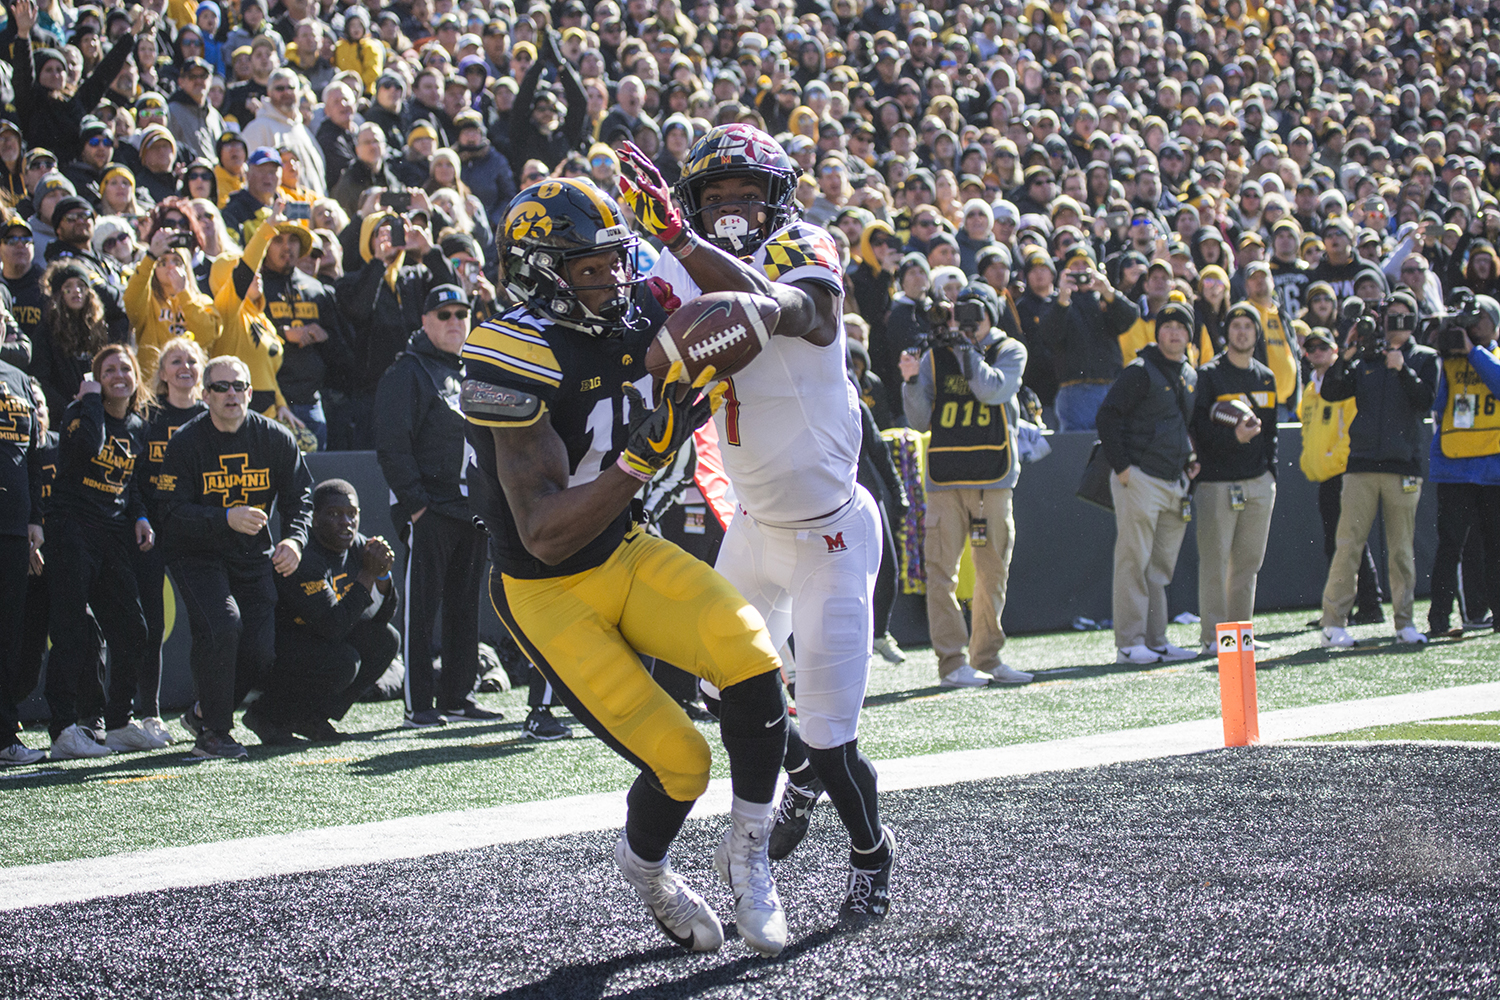 Iowa+wide+receiver+Brandon+Smith+hauls+in+a+touchdown+pass+during+a+football+game+between+Iowa+and+Maryland+in+Kinnick+Stadium+on+Saturday%2C+October+20%2C+2018.+The+Hawkeyes+defeated+the+Terrapins%2C+23-0.+